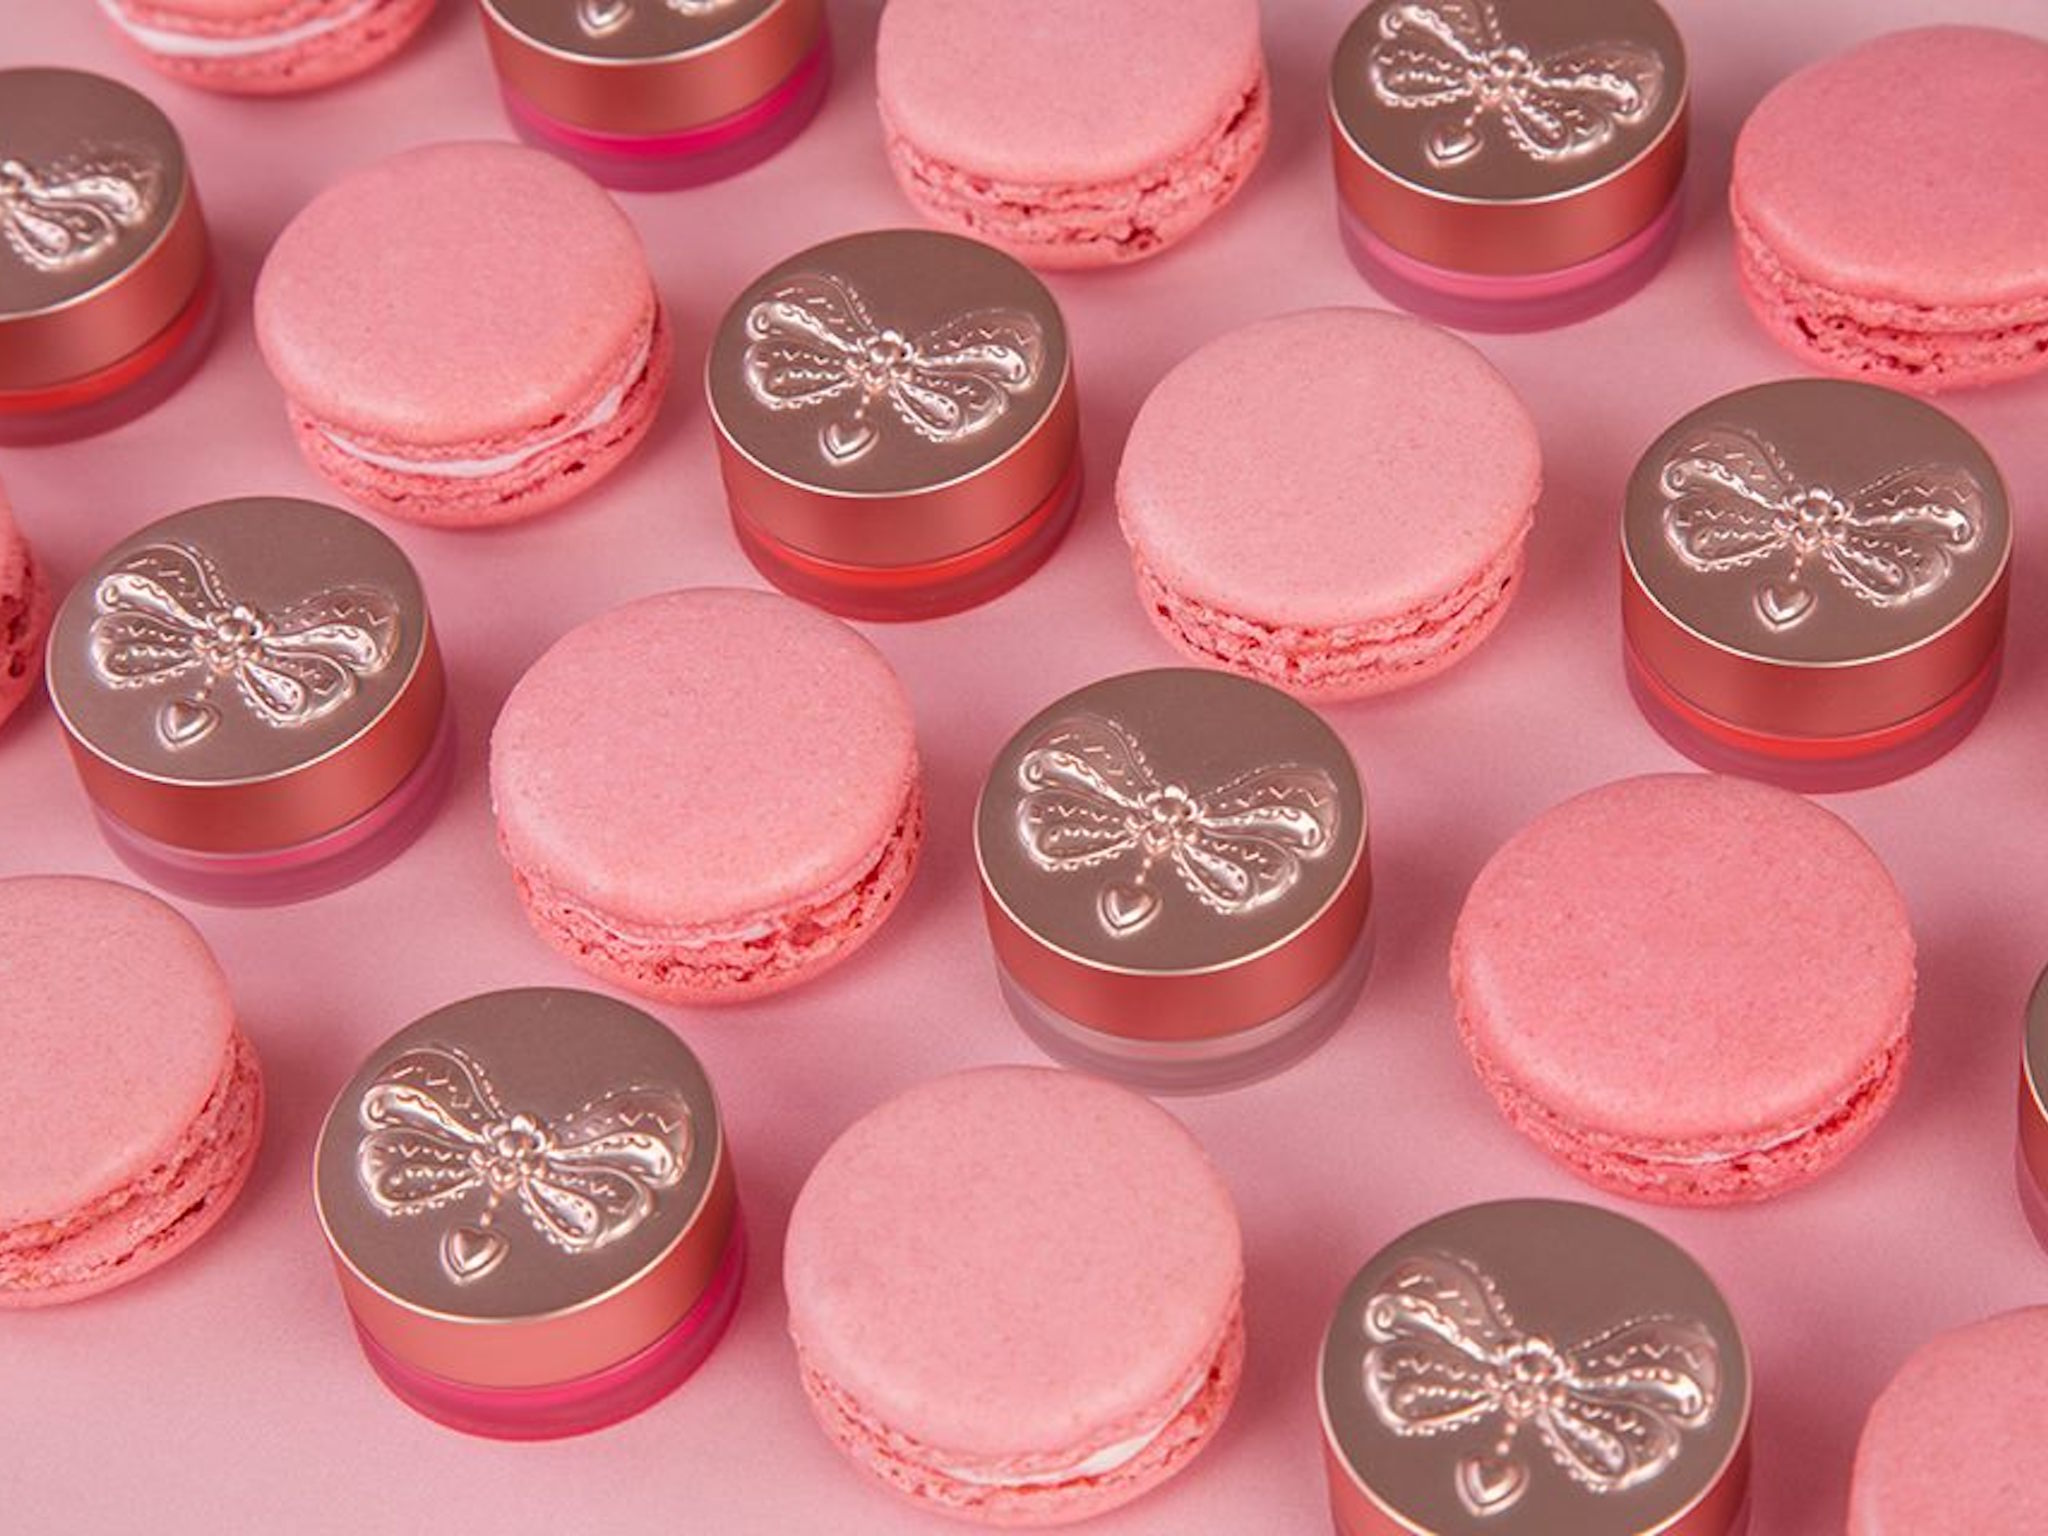 Famous French pâtisserie Ladurée is finally coming to Melbourne